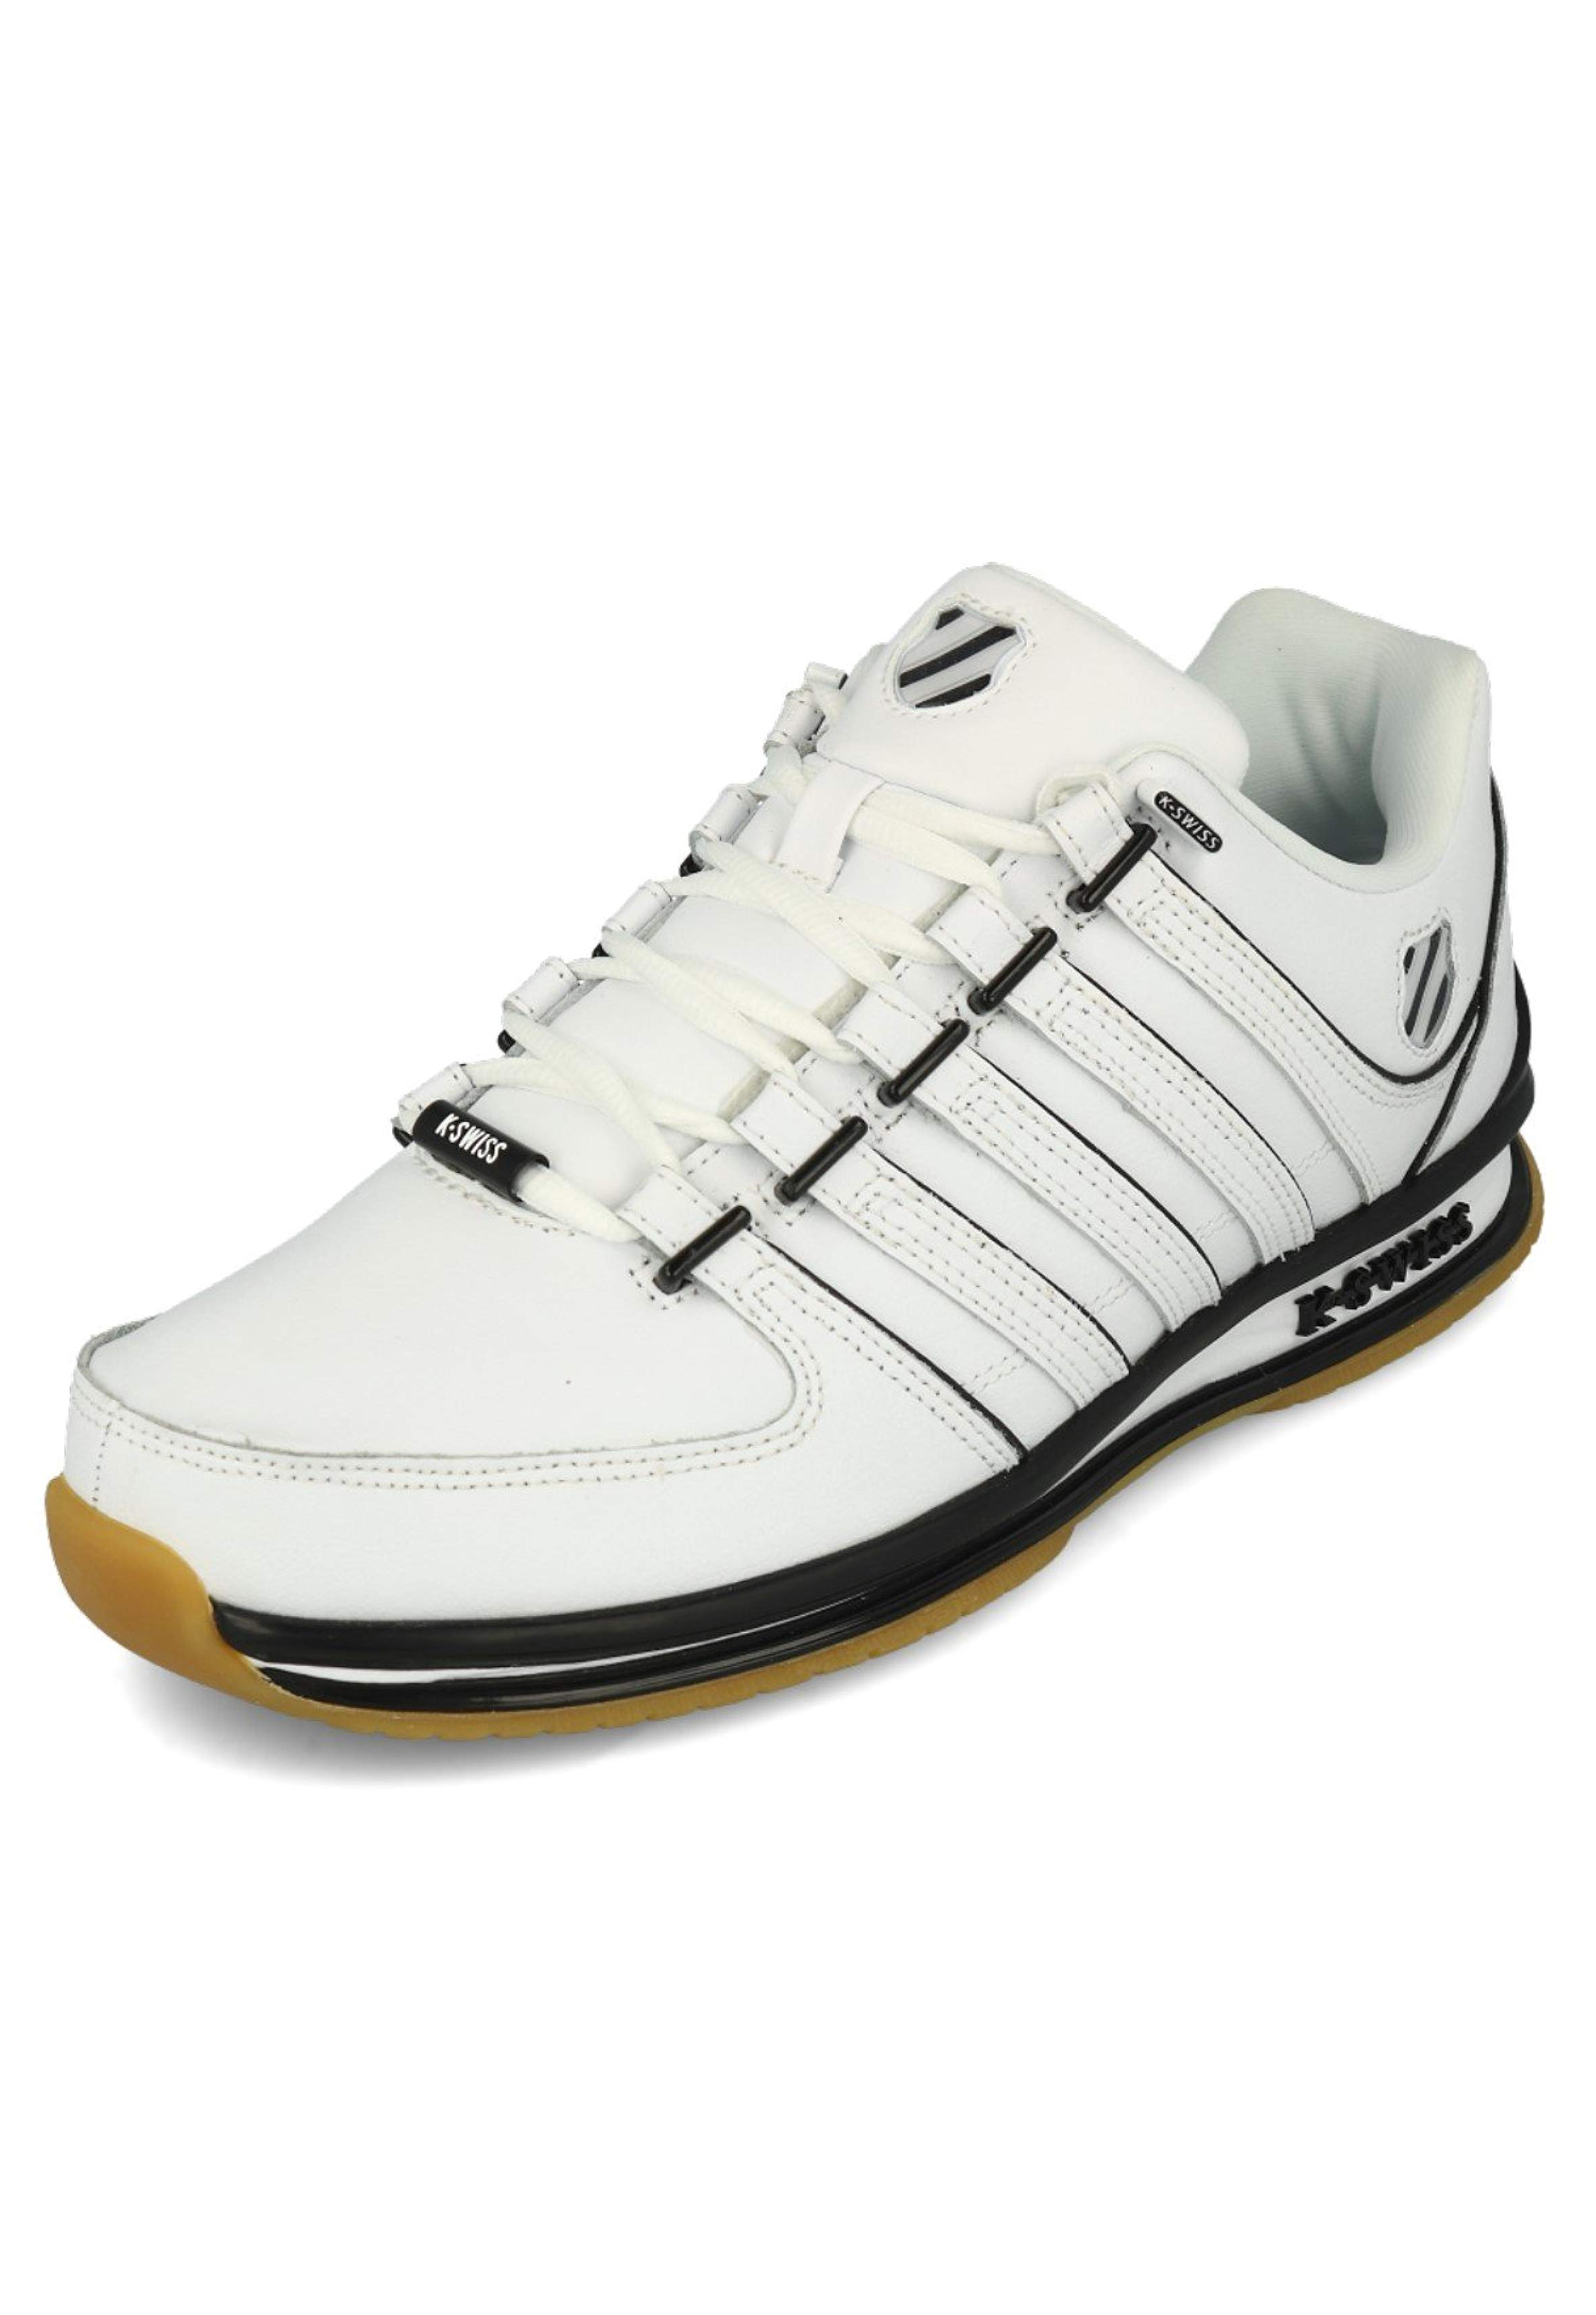 Mens K Swiss Trainers Rinzler SP Iconic Stripes Black White Red Leather Shoes